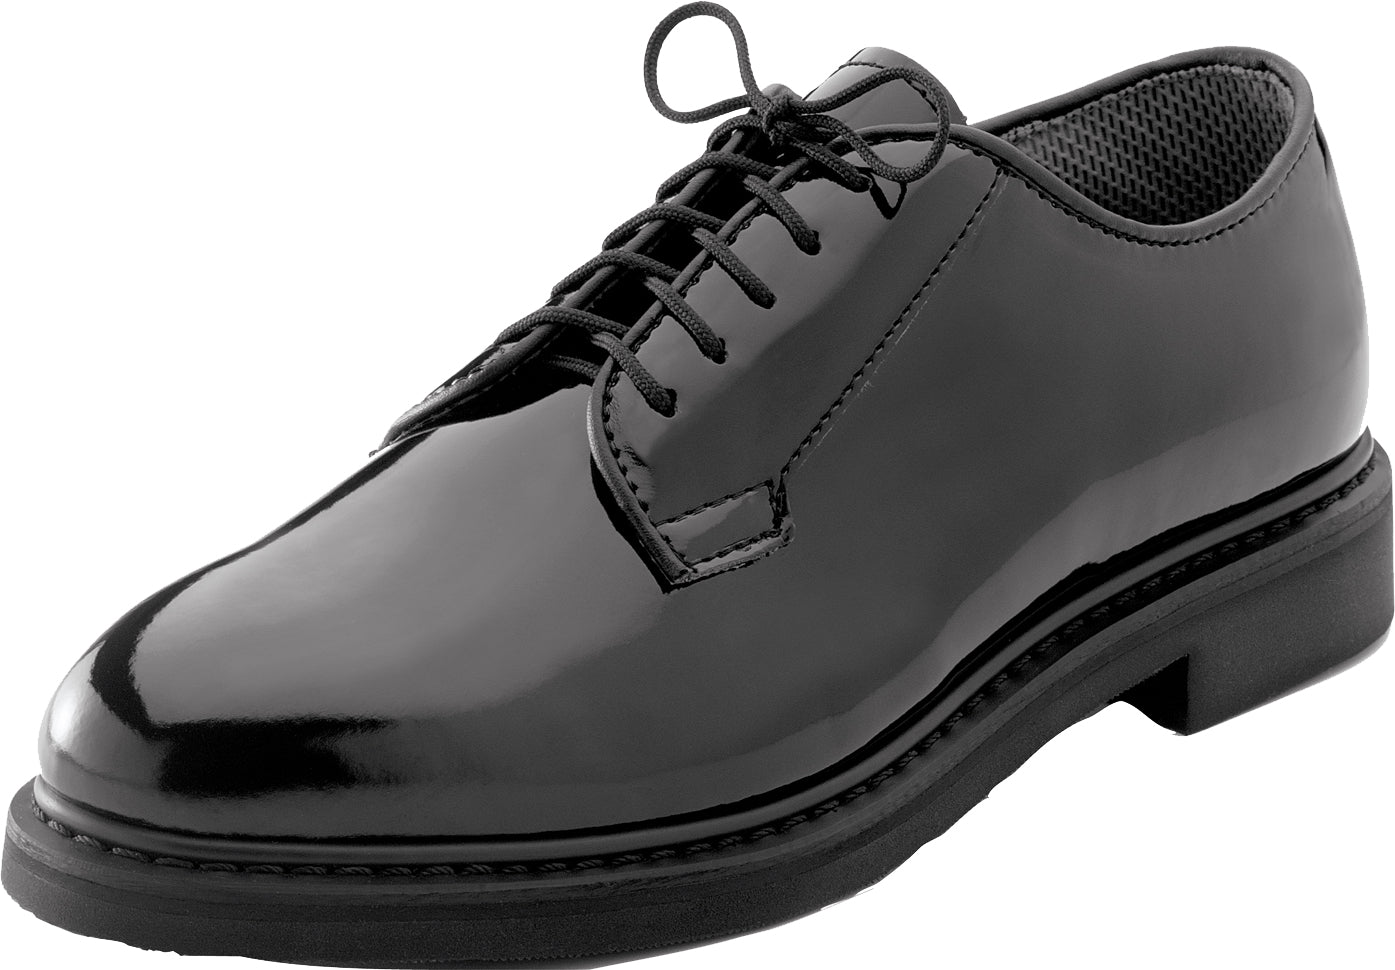 Black - US Navy Hi Gloss Lightweight Oxford Shoes